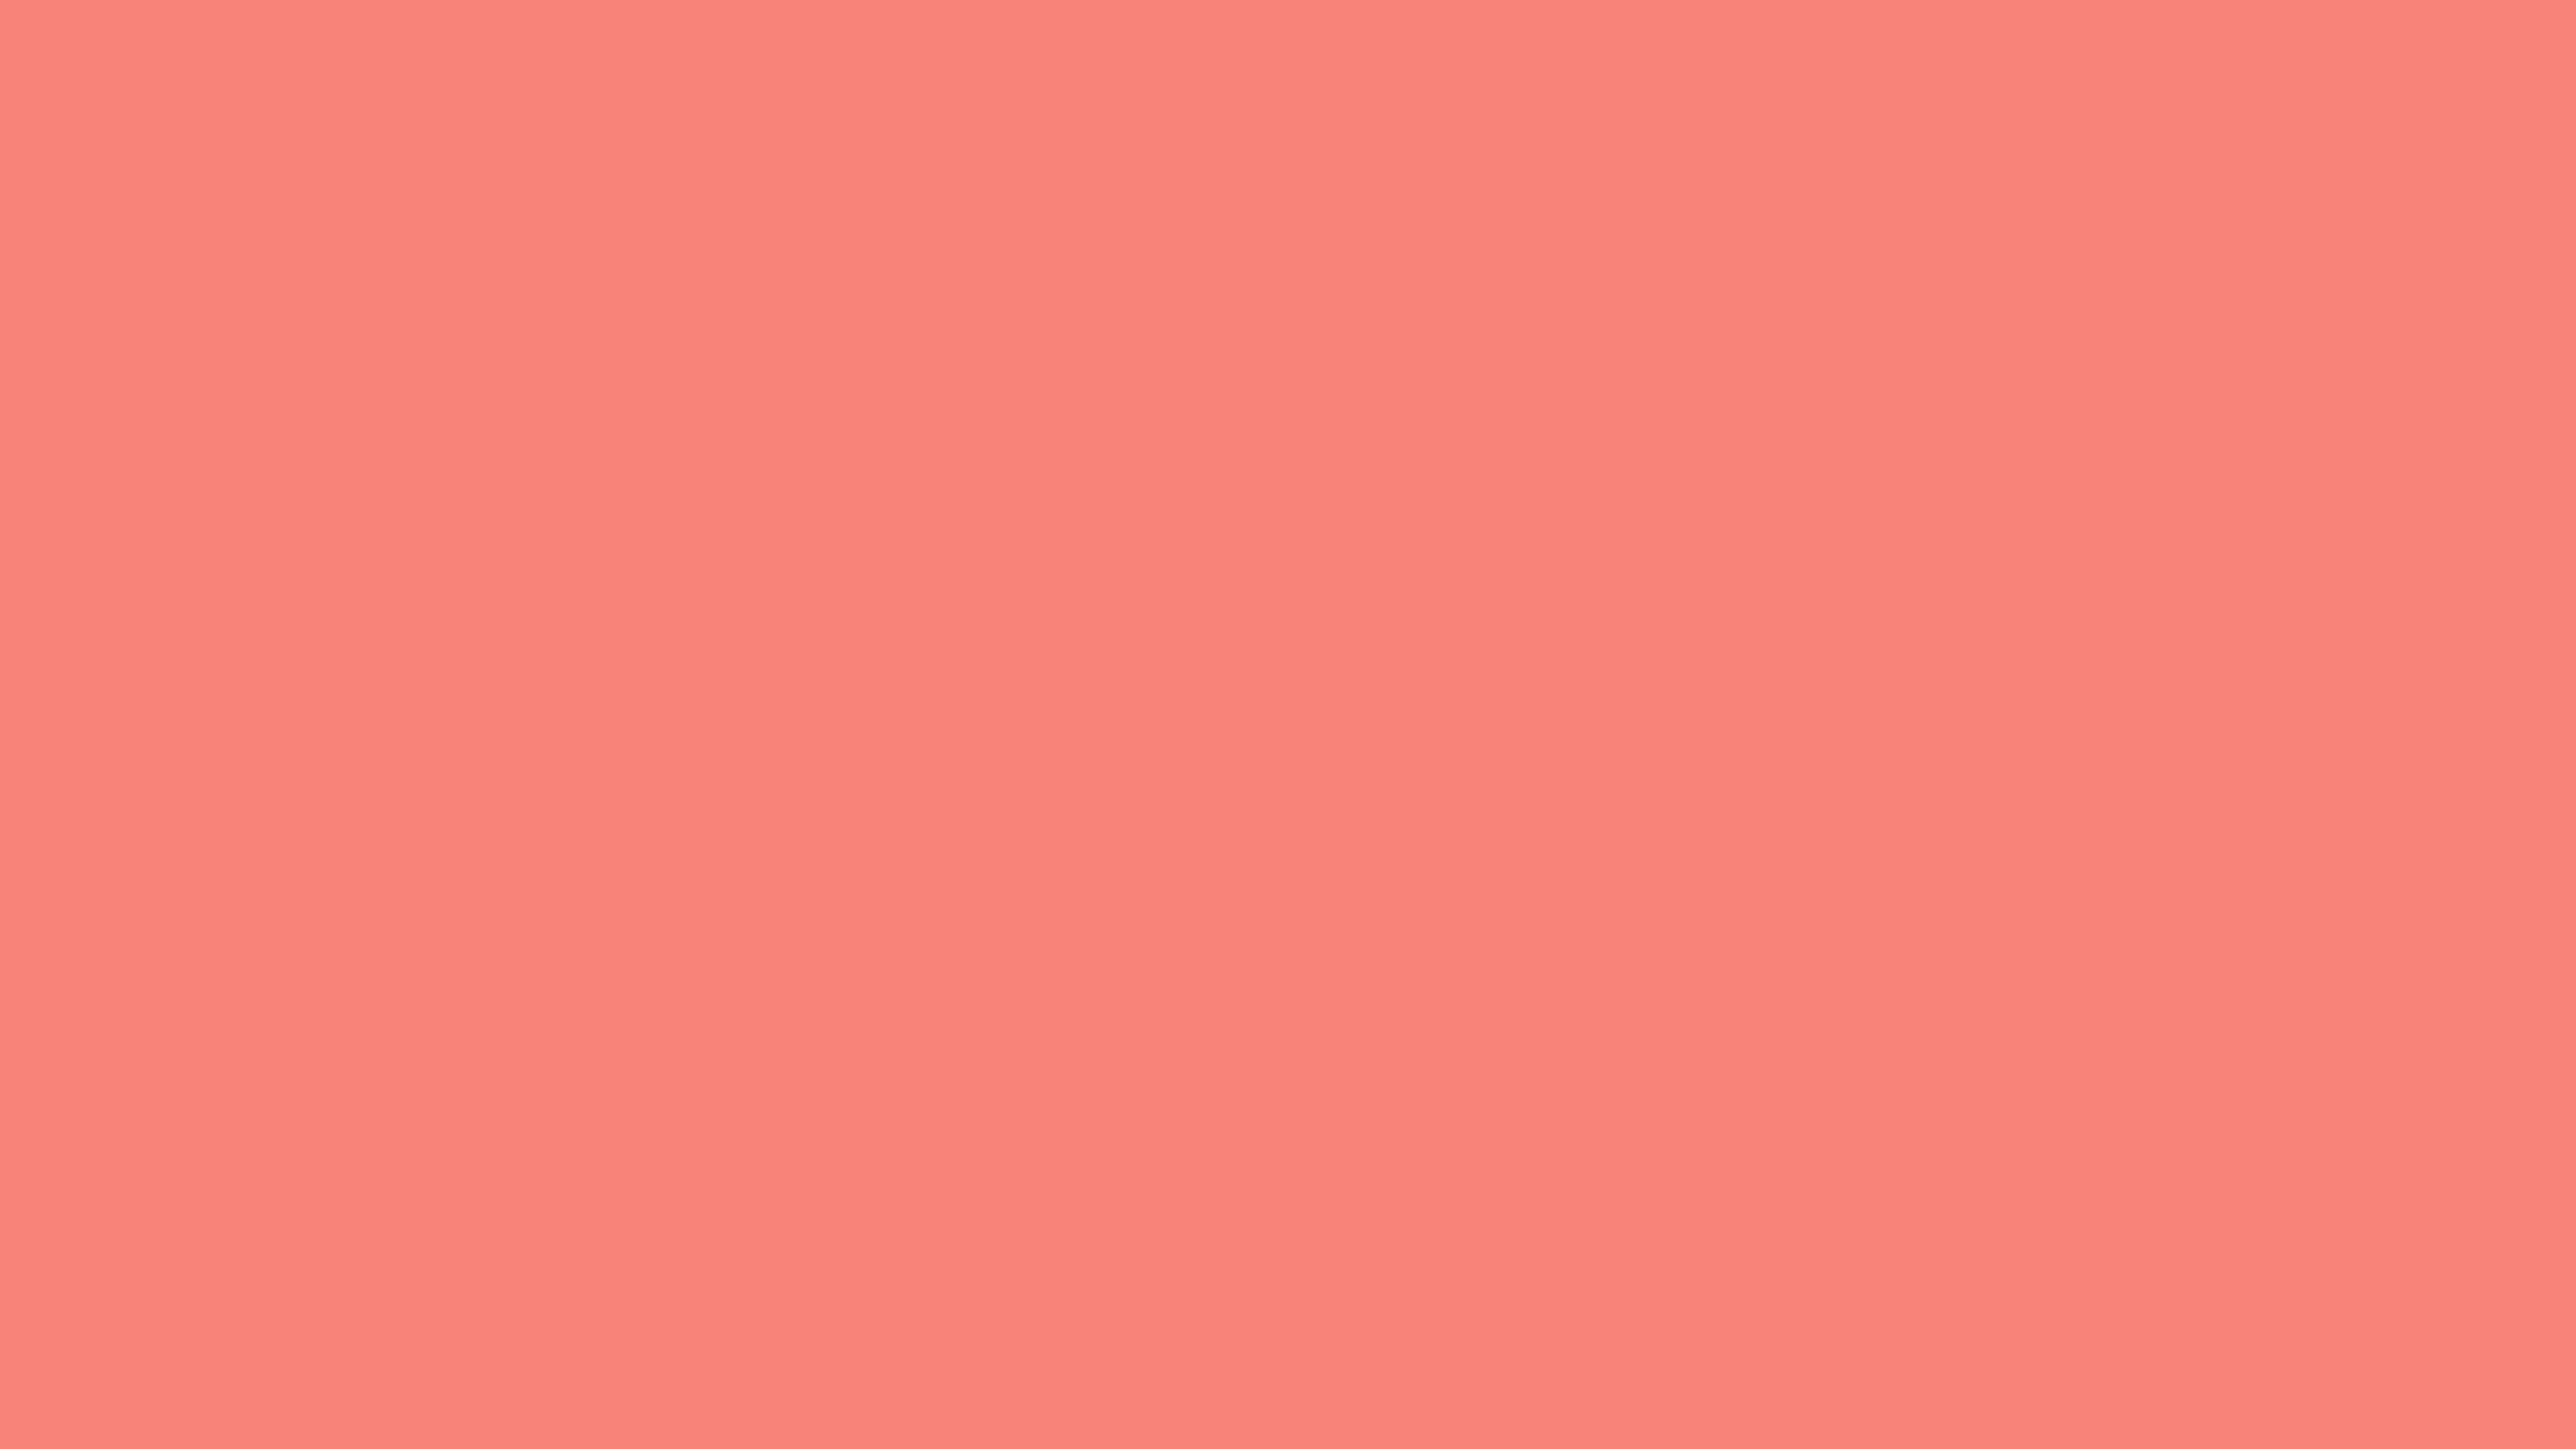 5120x2880 Coral Pink Solid Color Background